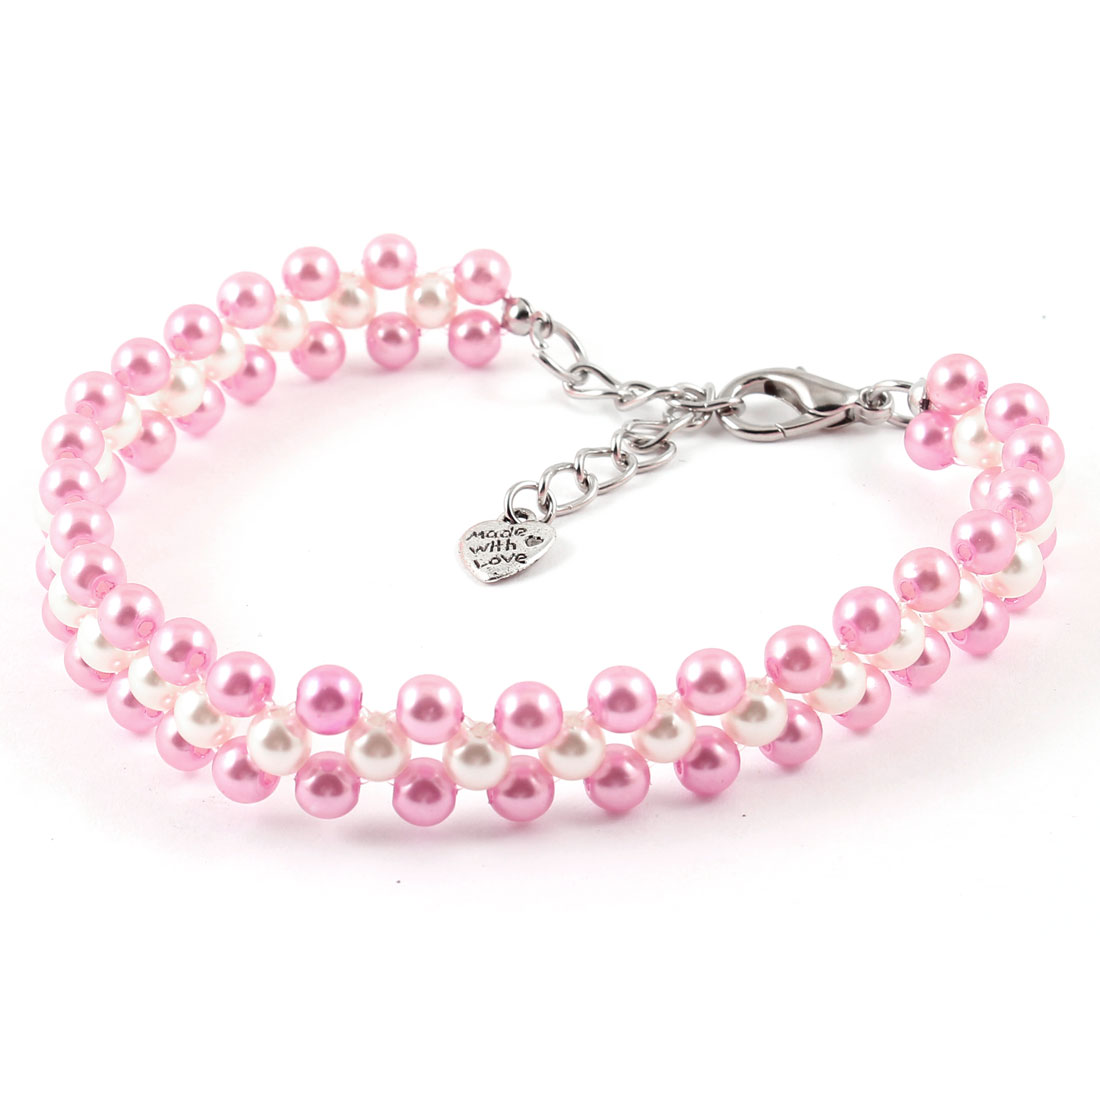 Round Beads Ornament Stretchy Pet Dog Puppy Cat Collar Necklace Pink White M(China (Mainland))